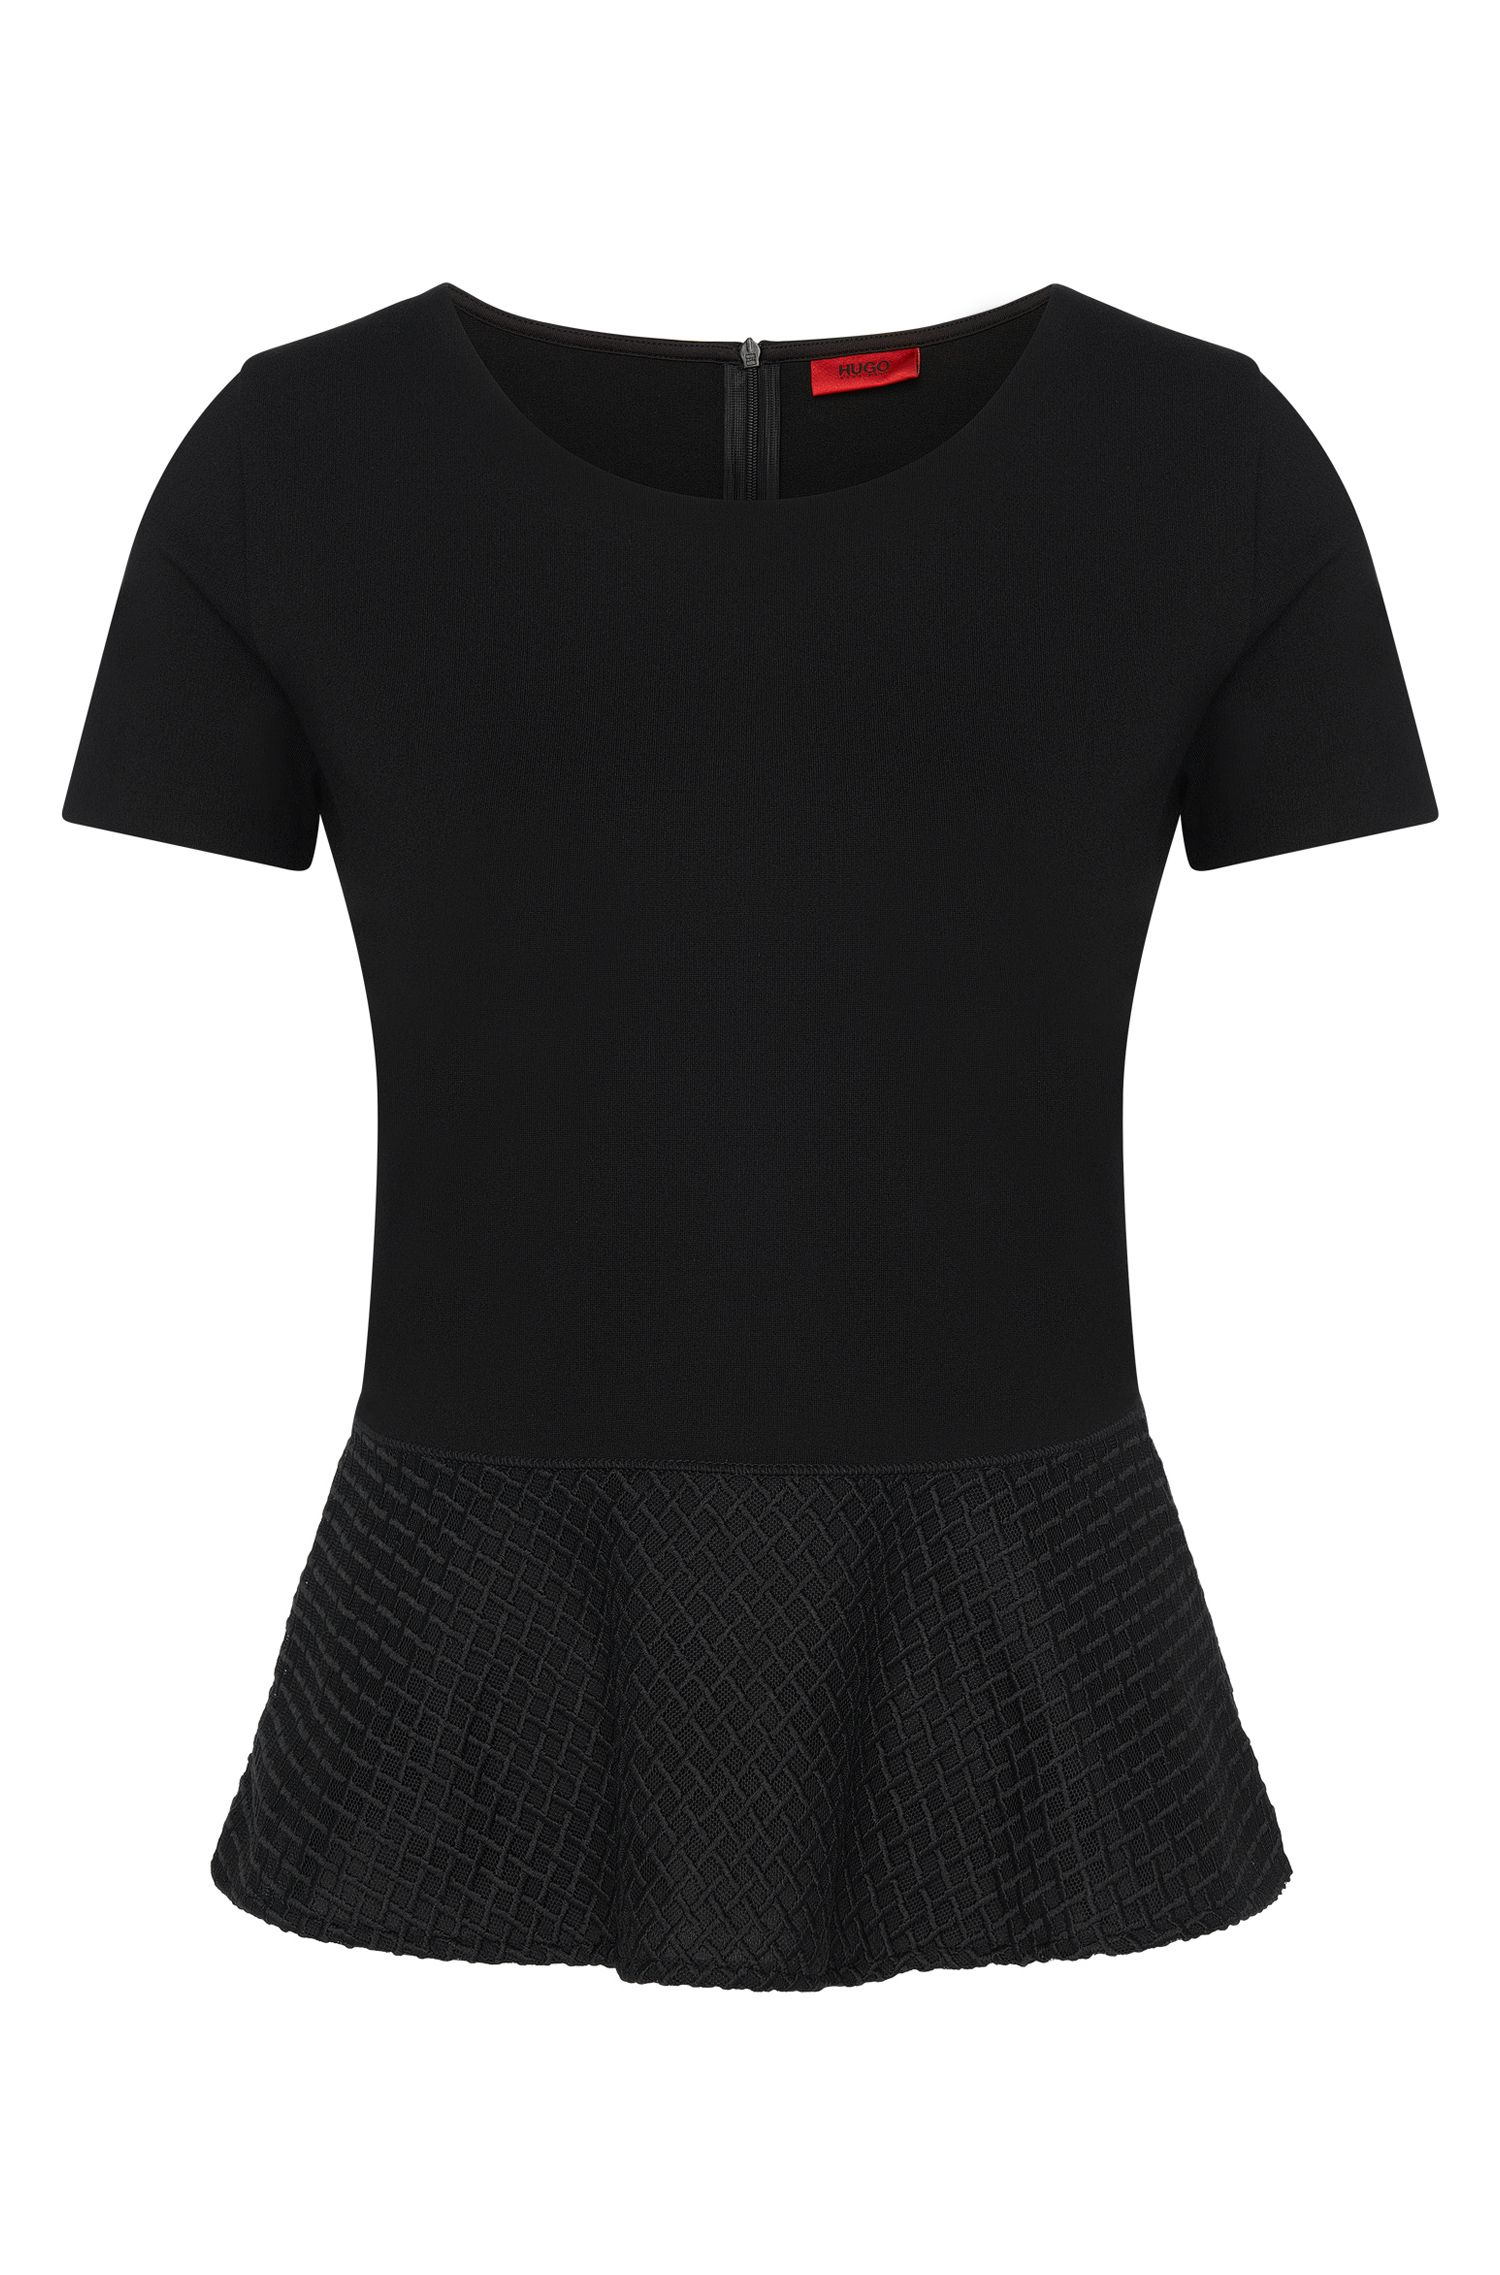 T-shirt in viscose blend with peplum detail: 'Dira'